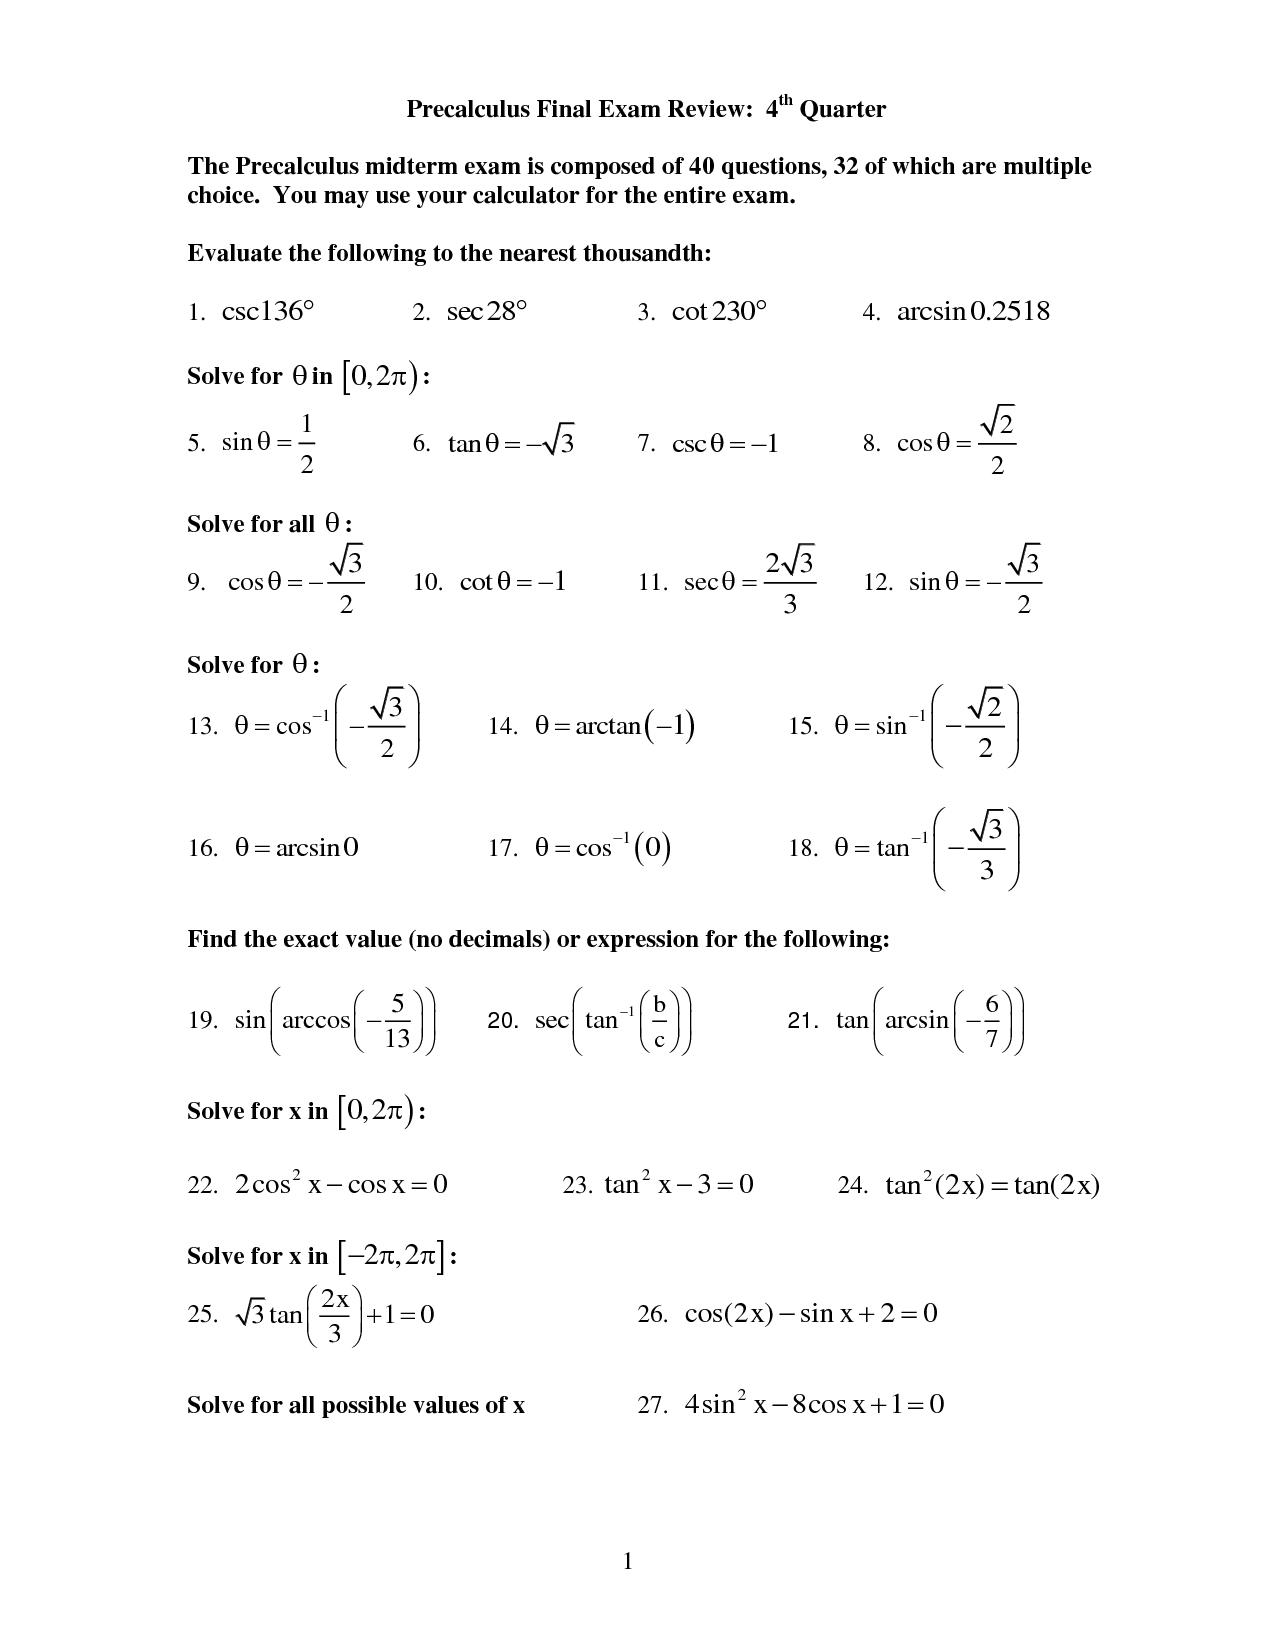 Precalculus Practice Exam Worksheet